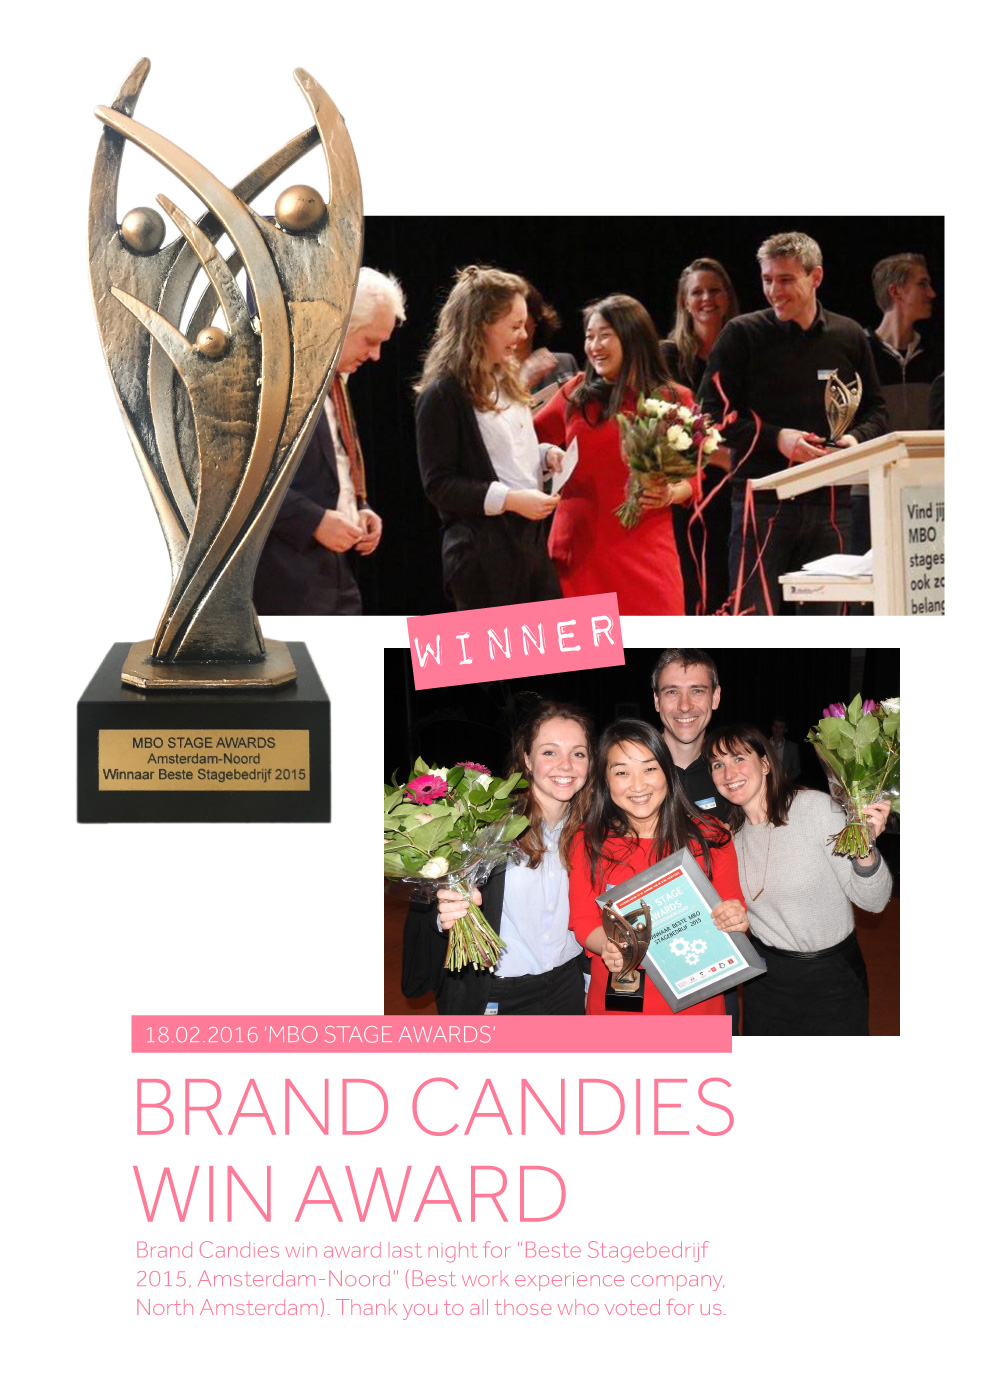 MBO Stage Awards - Brand Candies win award last night for �Beste Stagebedrijf 2015, Amsterdam-Noord� (Best work experience company, North Amsterdam). Thank you to all those who voted for us.